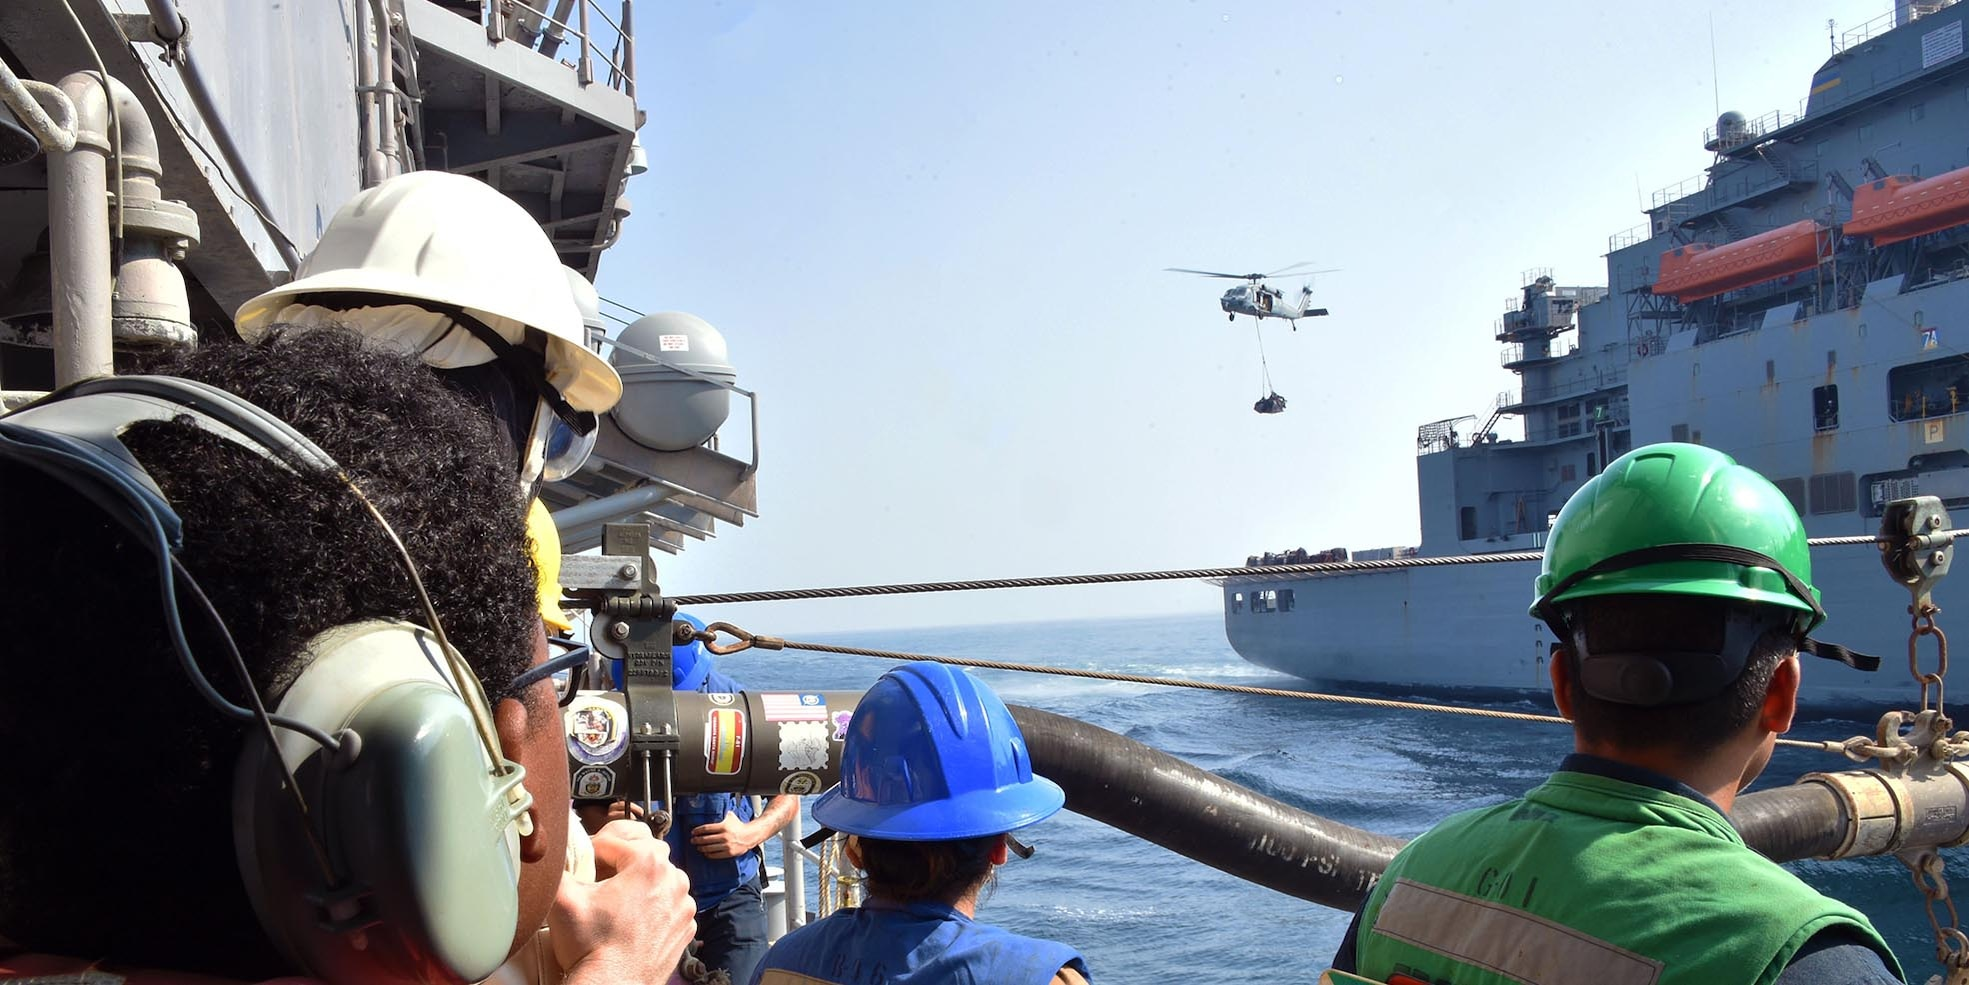 An MH-60S Seahawk helicopter transports cargo from the Military Sealift Command dry cargo and ammunition ship USNS Matthew Perry (T-AKE 9) to the guided-missile cruiser USS Philippine Sea (CG 58) during a vertical replenishment-at-sea in the Arabian Sea, Oct. 7.